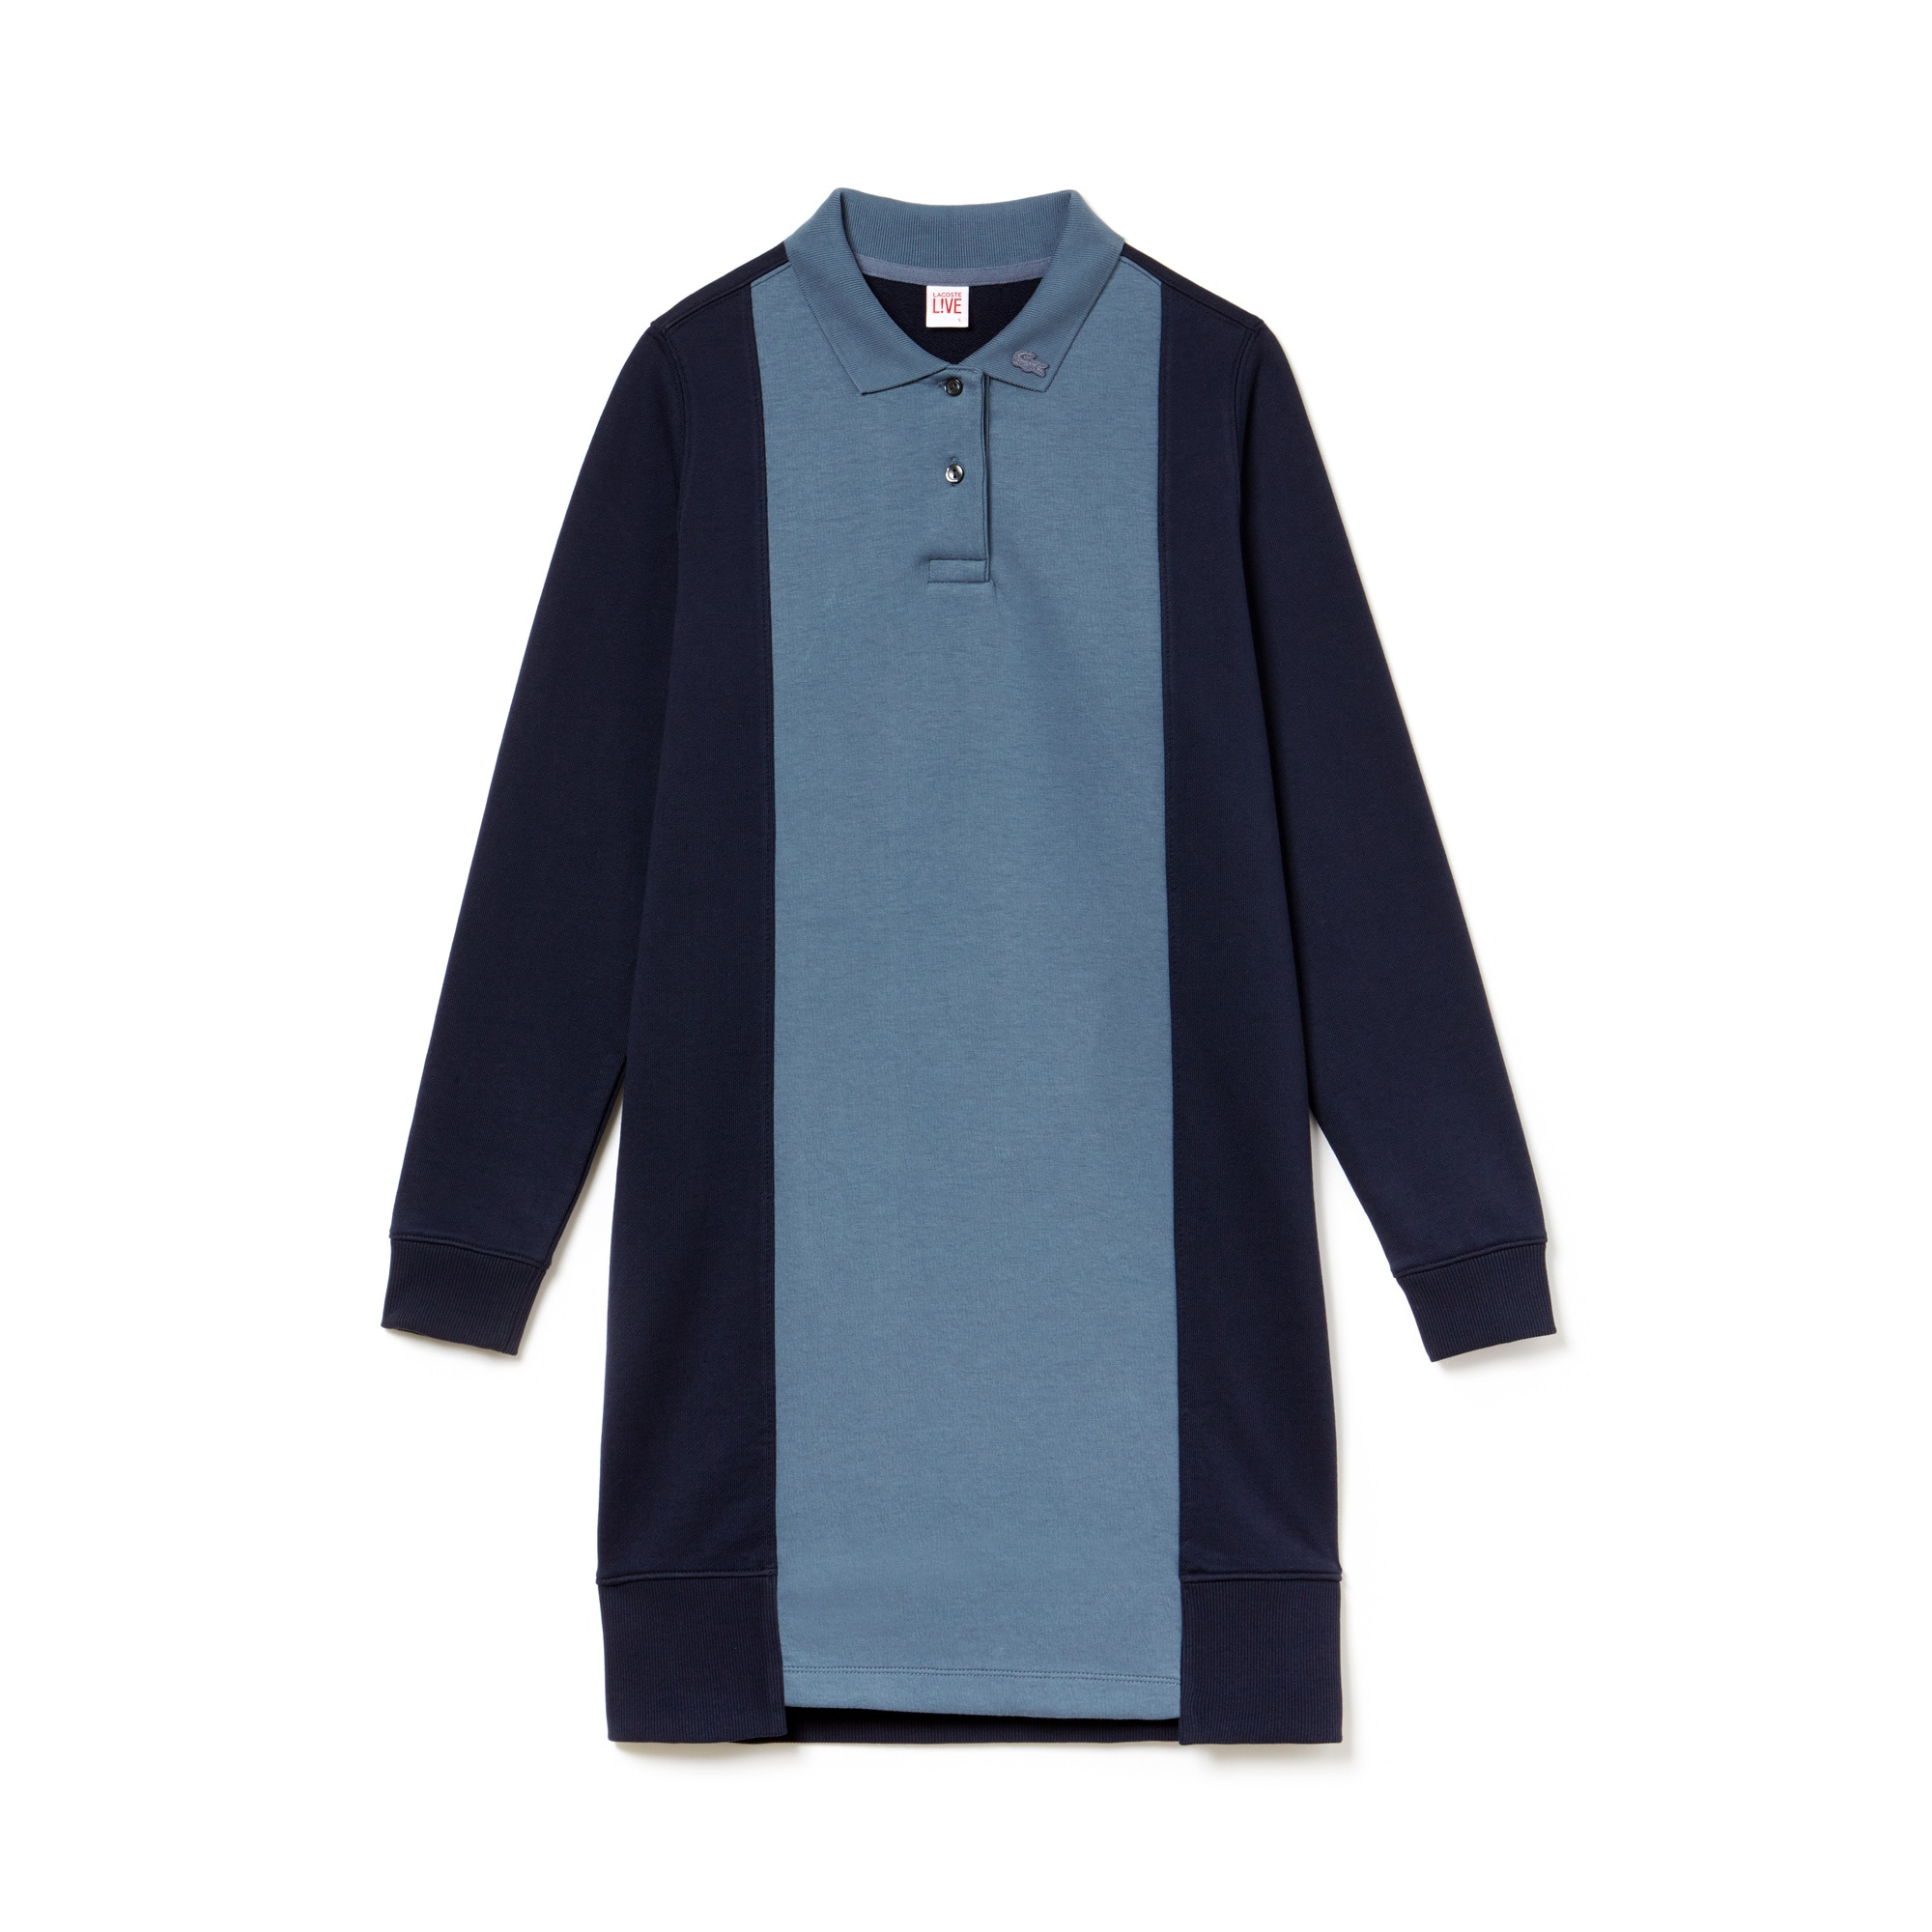 Women's LIVE Contrast Panels Fleece Polo Dress